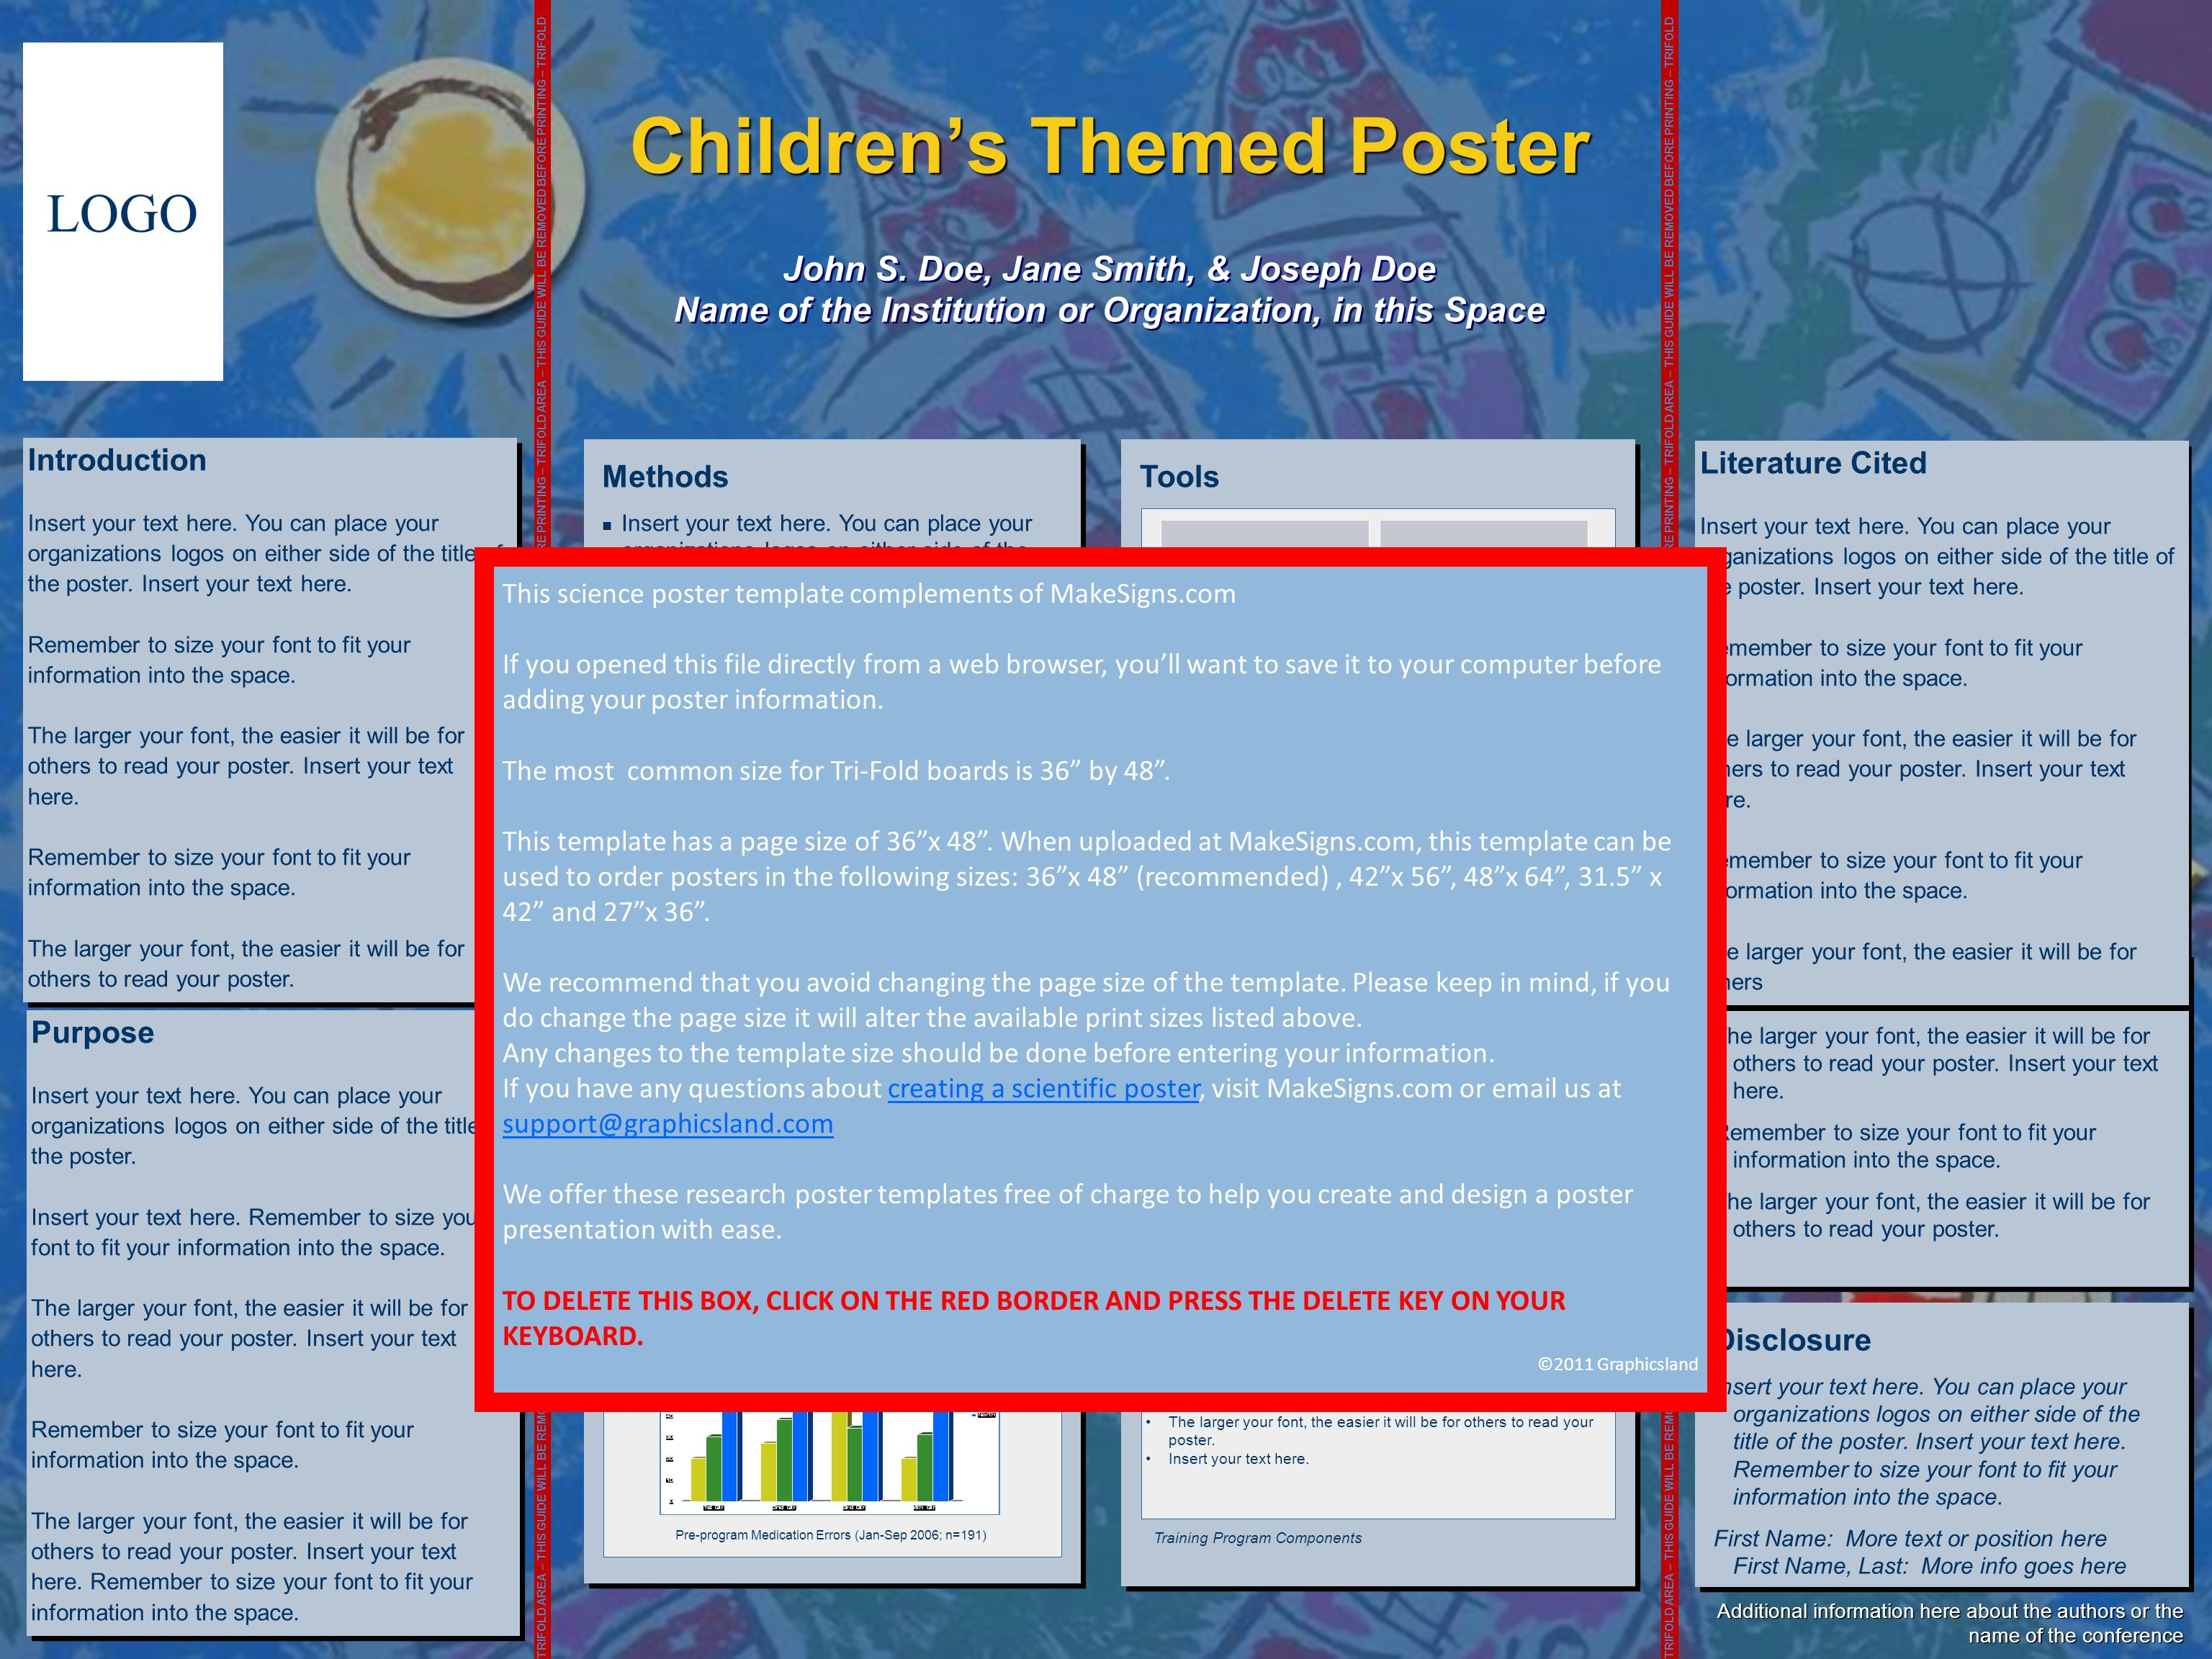 Childrens Themed Poster John S. Doe, Jane Smith, & Joseph Doe Name of the Institution or Organization, in this Space LOGO TRIFOLD AREA – THIS GUIDE WI